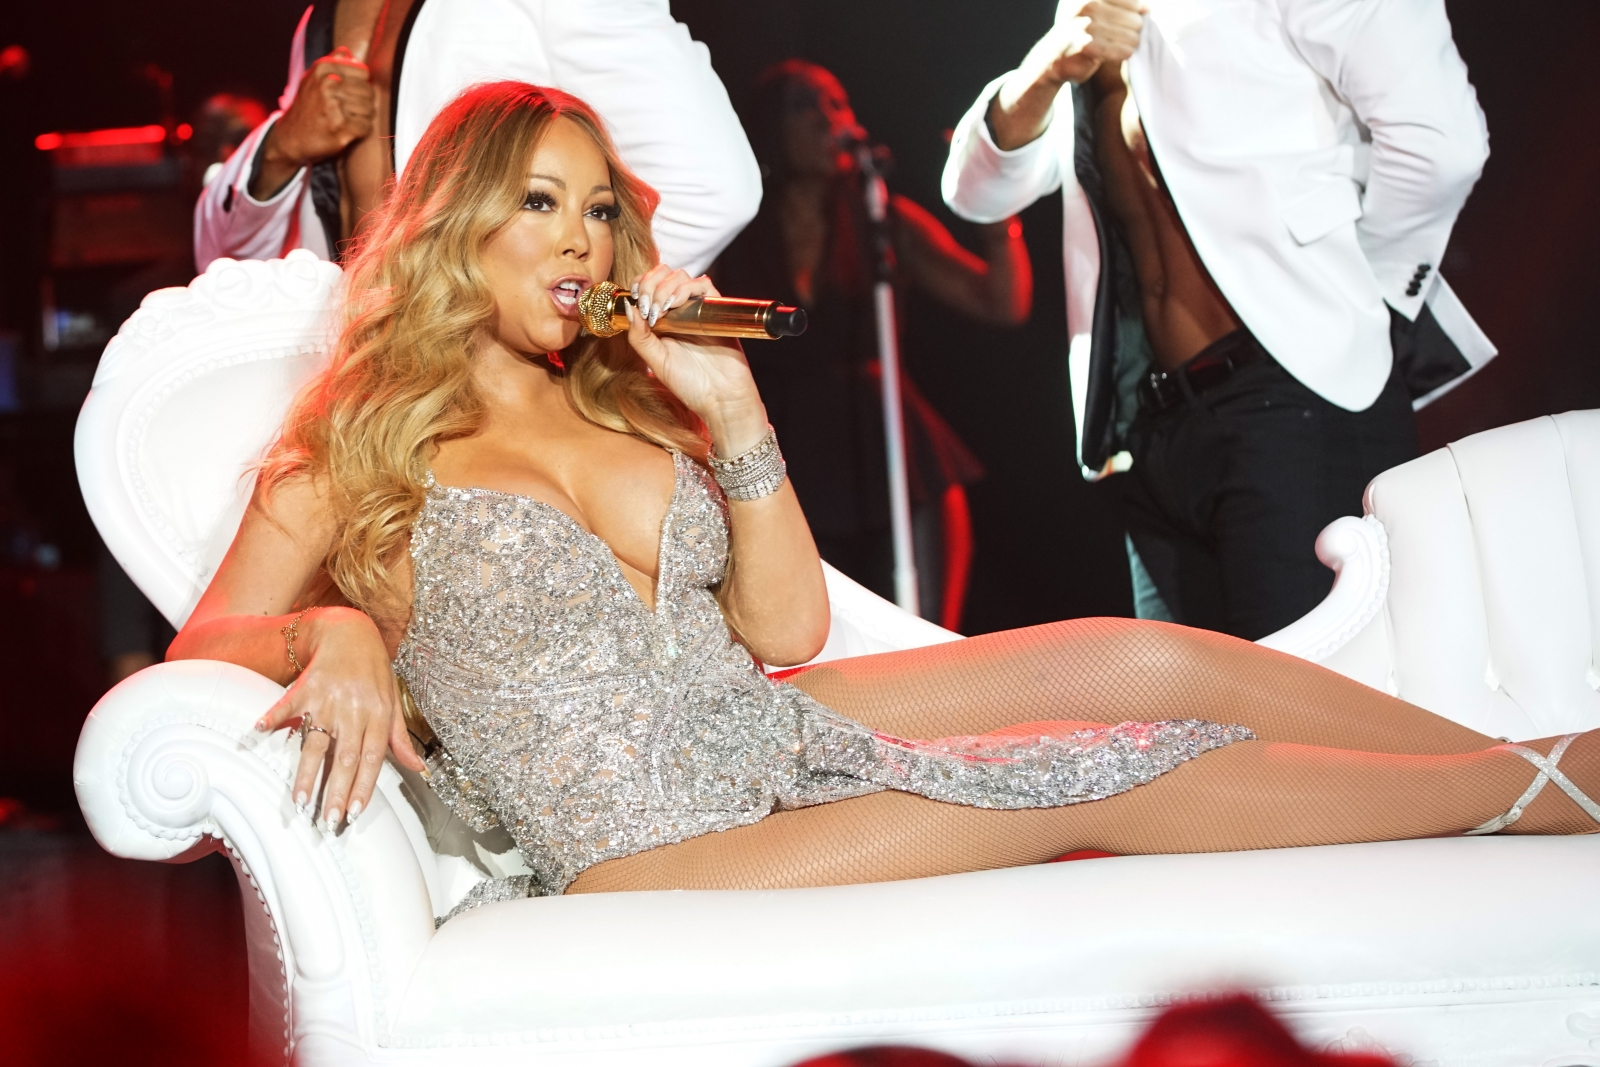 Mariah Carey Dons A Shiny Diamond Bra While Filming For